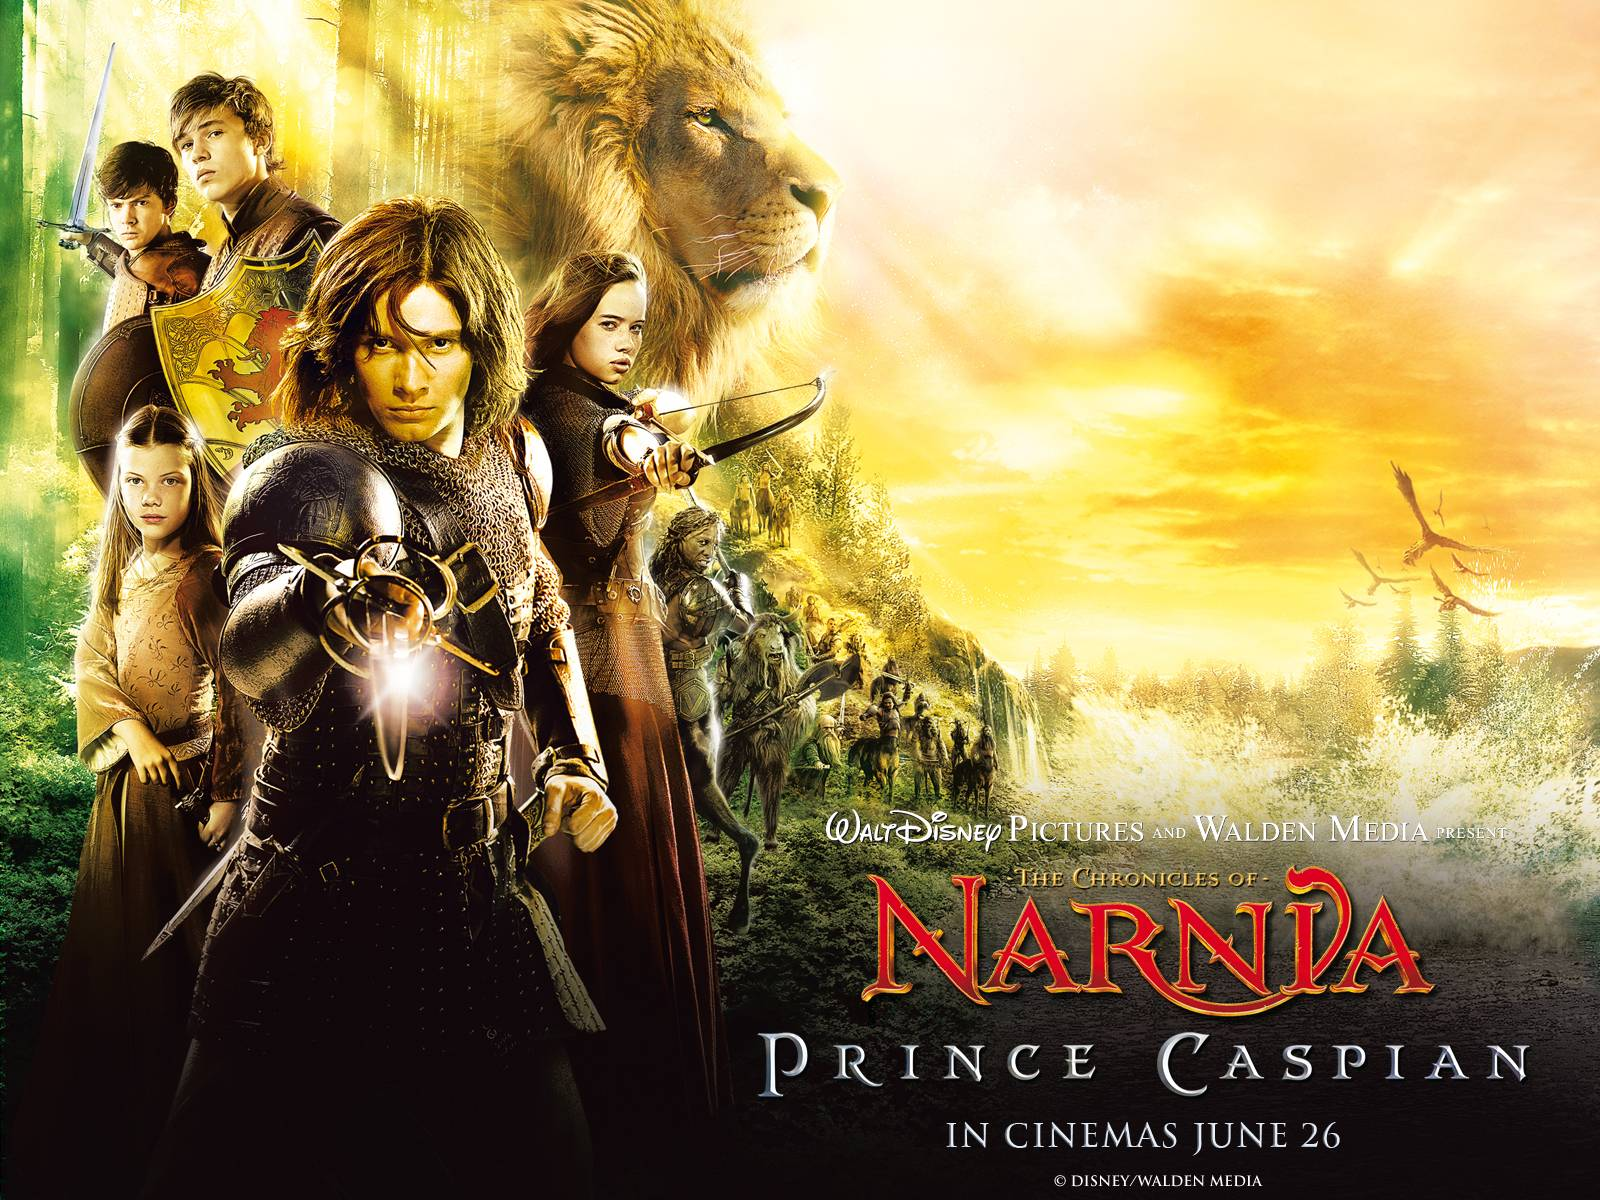 317104-fantasy-the-chronicles-of-narnia-prince-caspian-wallpaper